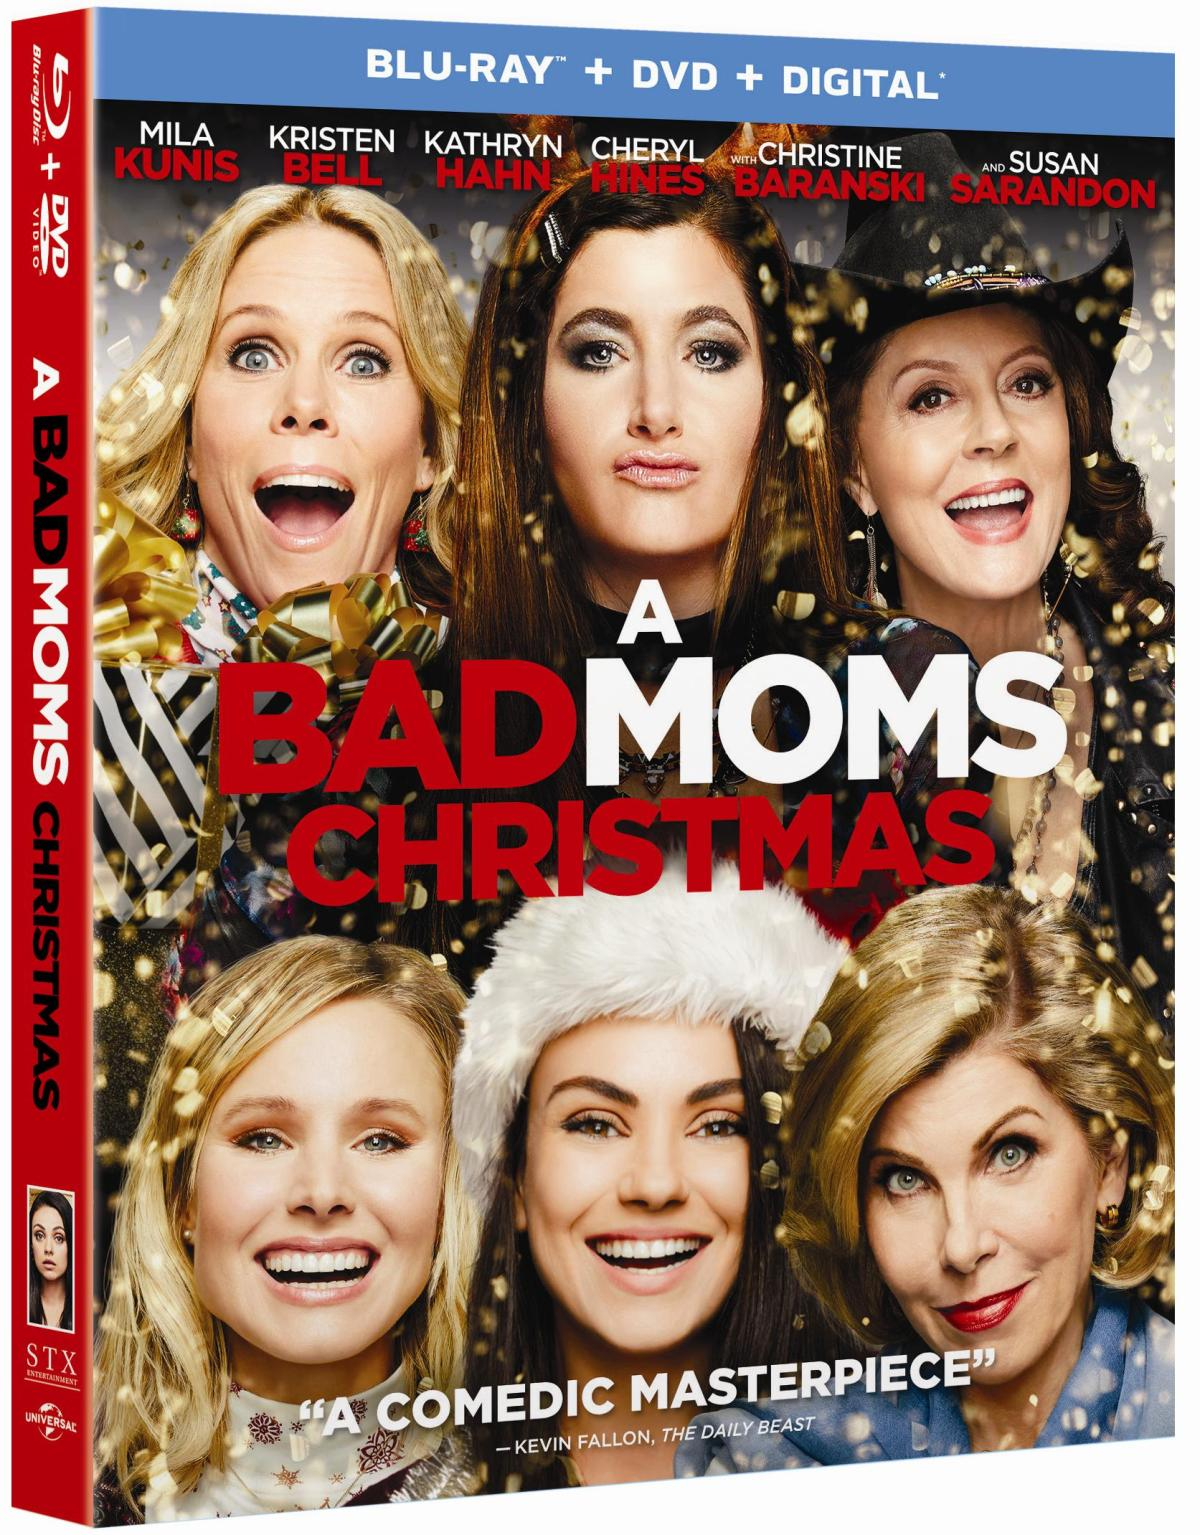 [GIVEAWAY] Win 'A Bad Moms Christmas' On Blu-ray: Arrives On Blu-ray & DVD February 6, 2018 From Universal 18